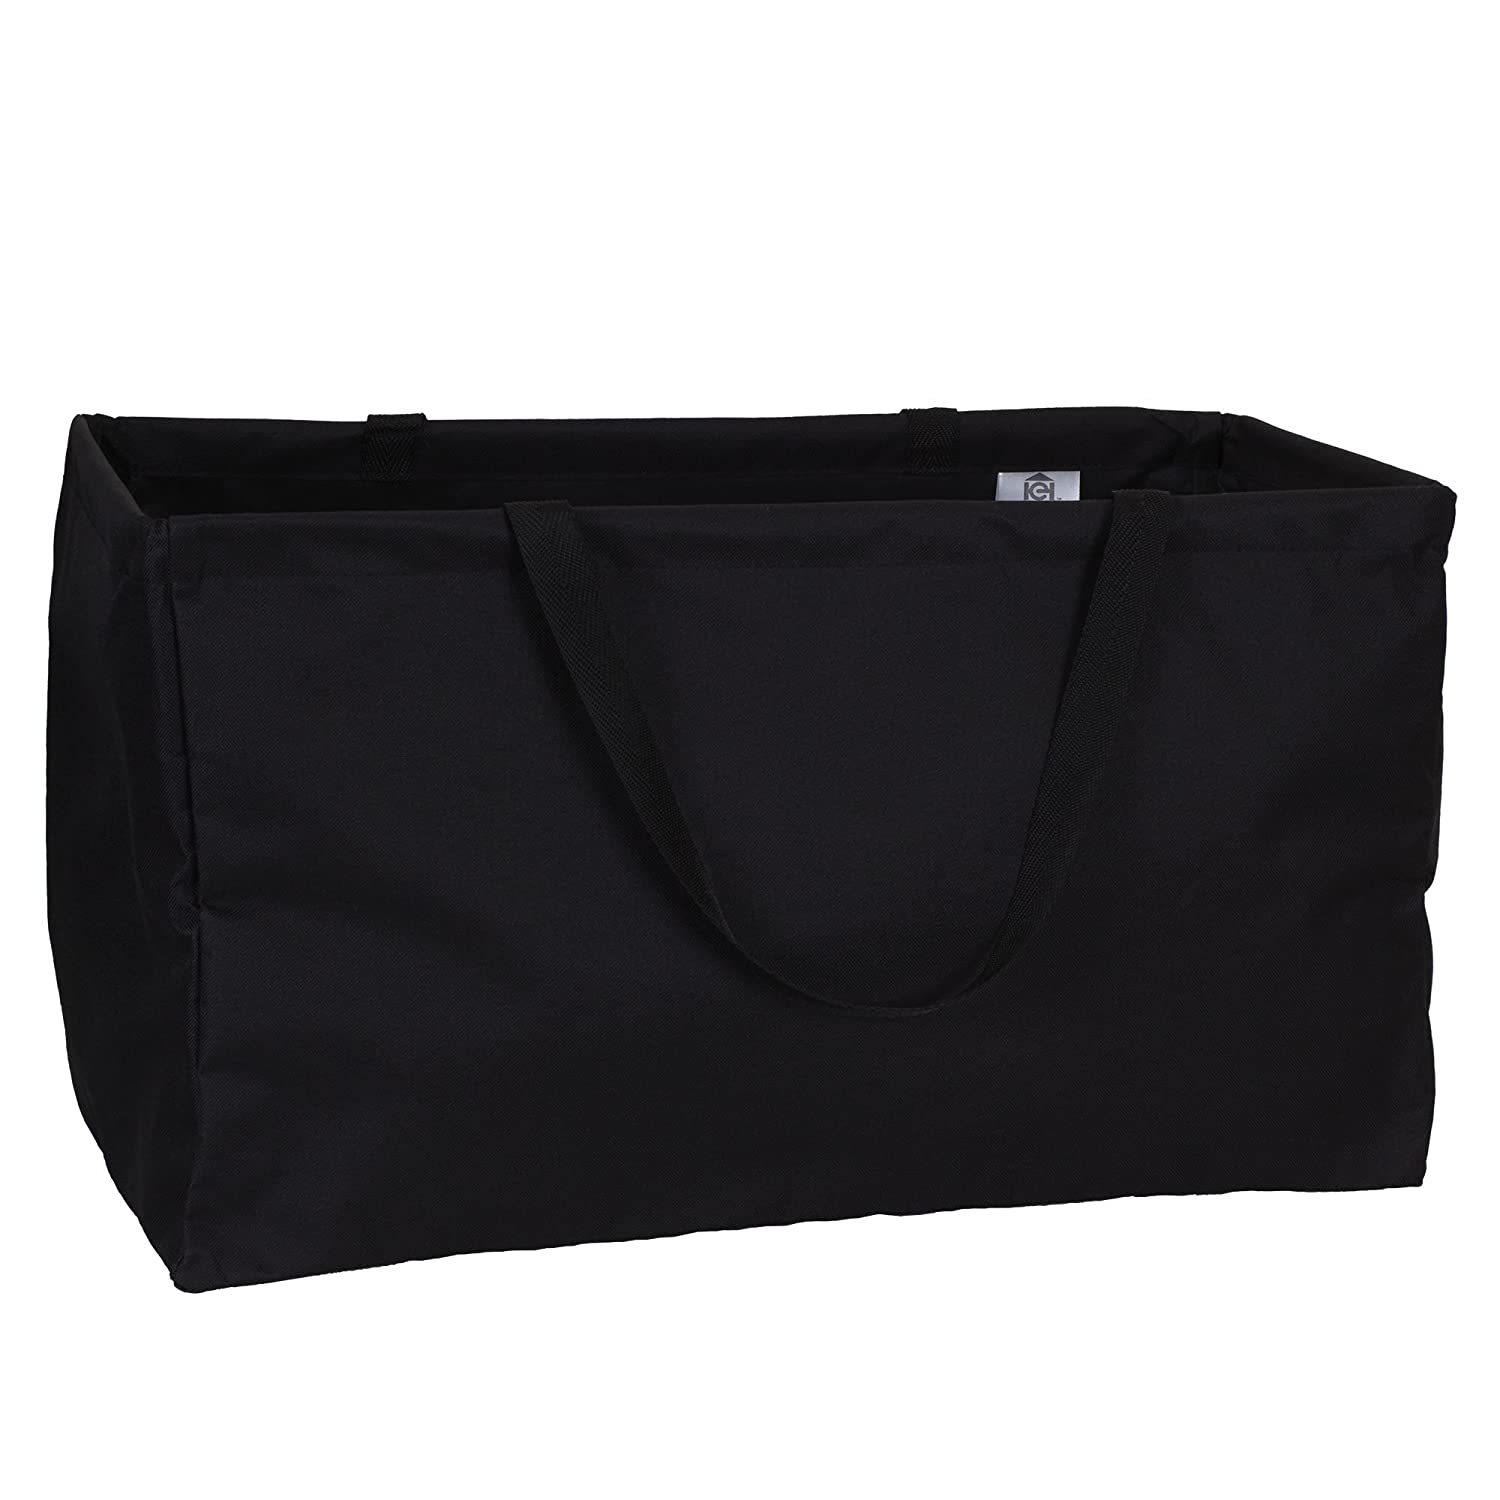 Household Essentials 2212-1 Krush Canvas Utility Tote | Reusable Grocery Shopping Bag | Laundry Carry Bag | Black